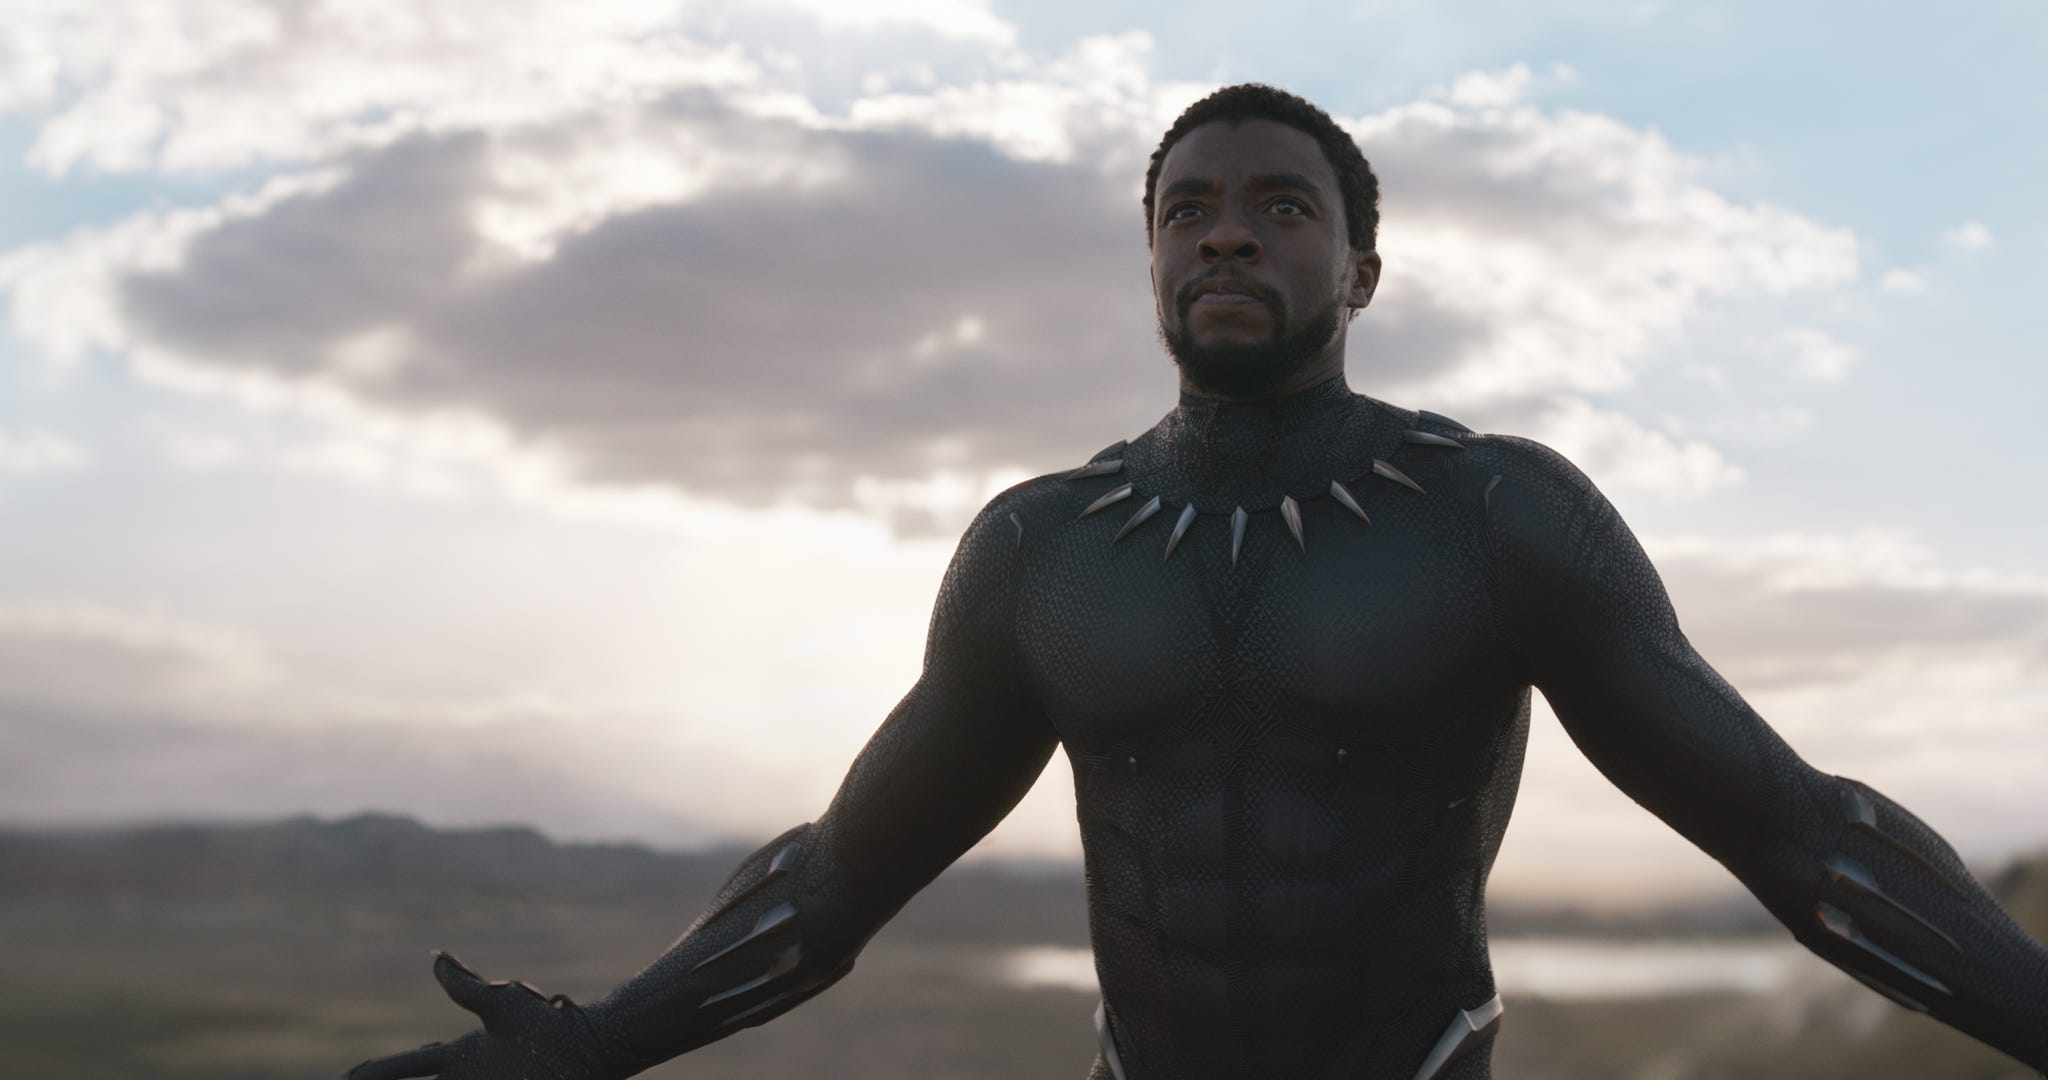 Read  Black Panther  director Ryan Coogler s entire touching tribute to Chadwick Boseman